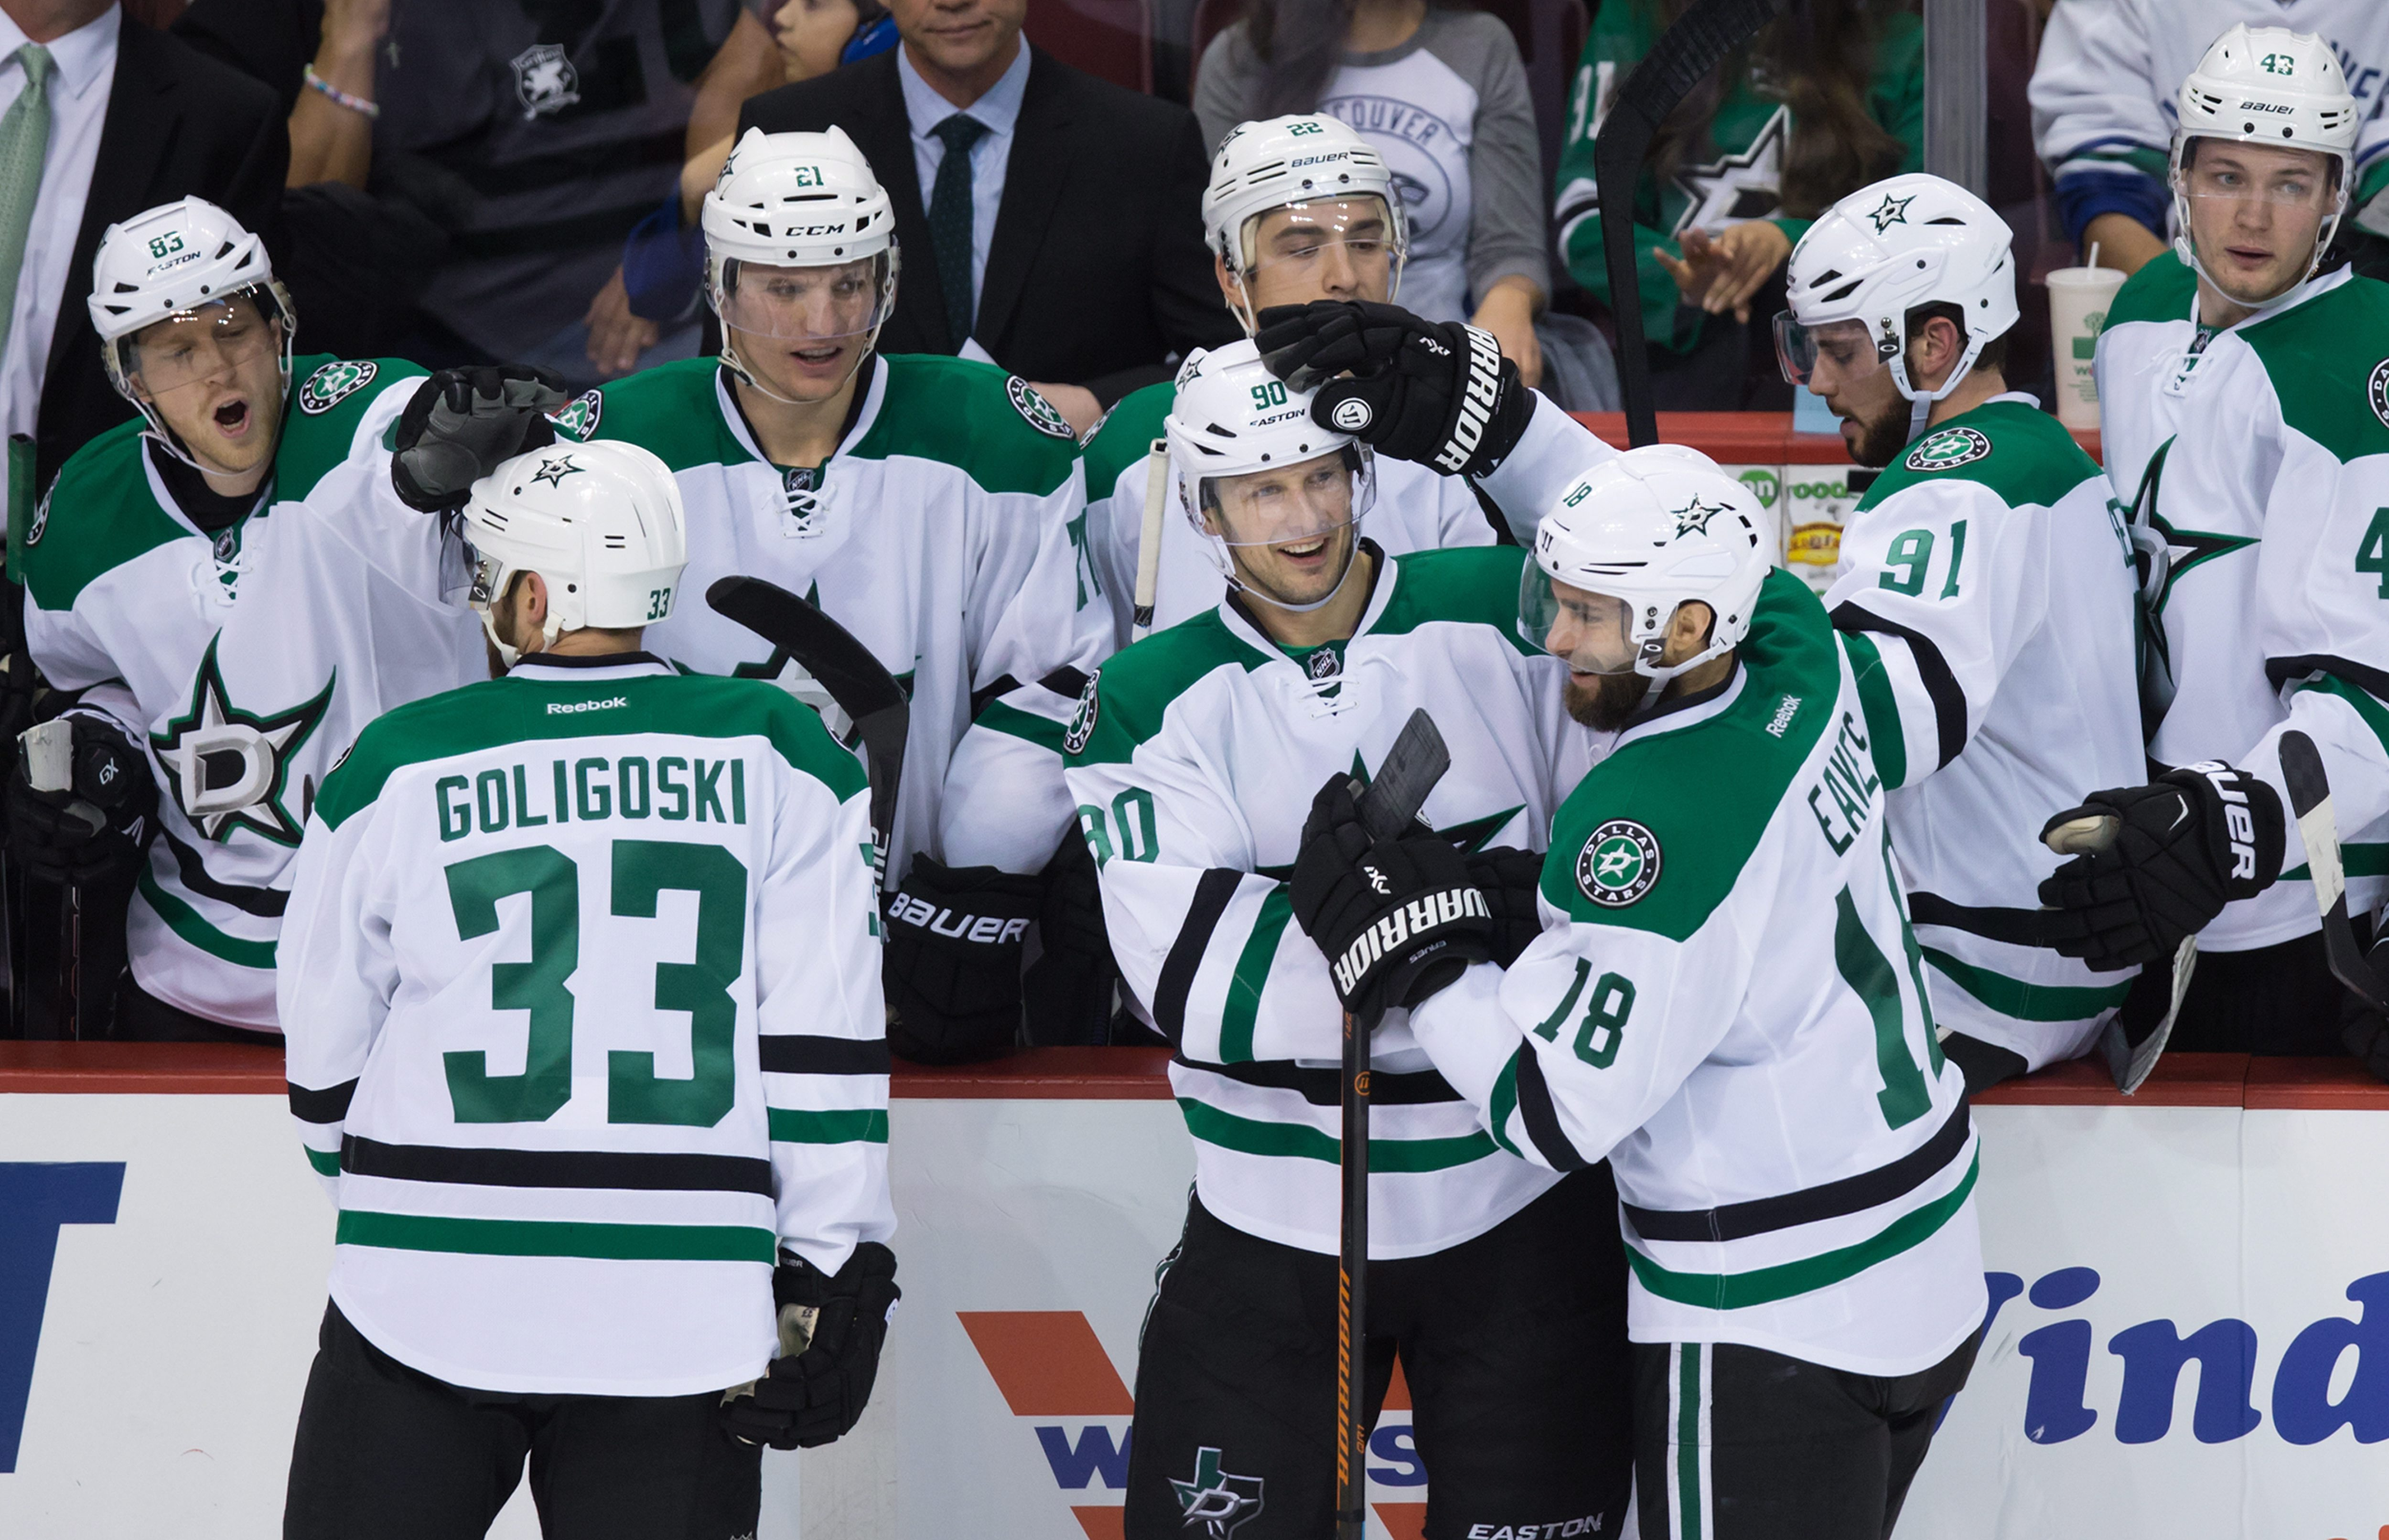 Dallas Stars' Jason Spezza, center, and Patrick Eaves, front right, celebrate Spezza's empty-net goal against the Vancouver Canucks during the third period of an NHL hockey game Thursday, Dec. 3, 2015, in Vancouver, British Columbia. (Darryl Dyck/The Cana